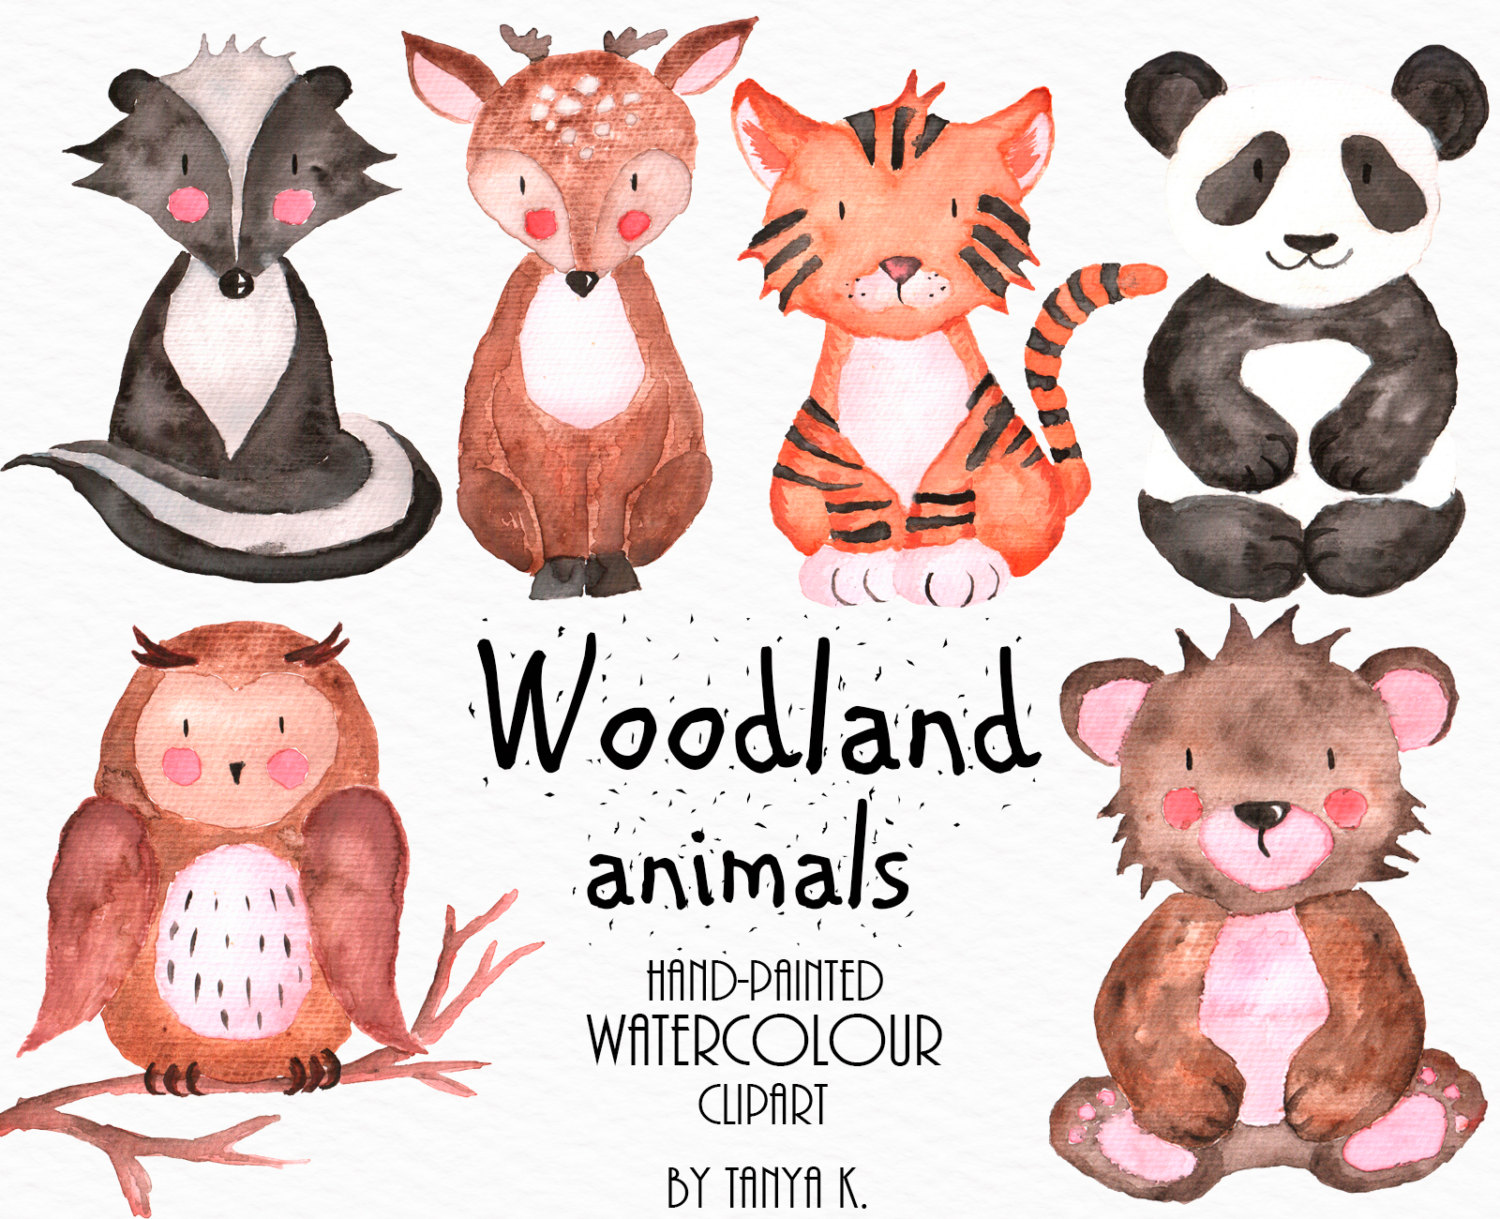 Free clipart commercial use jpg black and white download Free animal clipart for commercial use - ClipartFest jpg black and white download